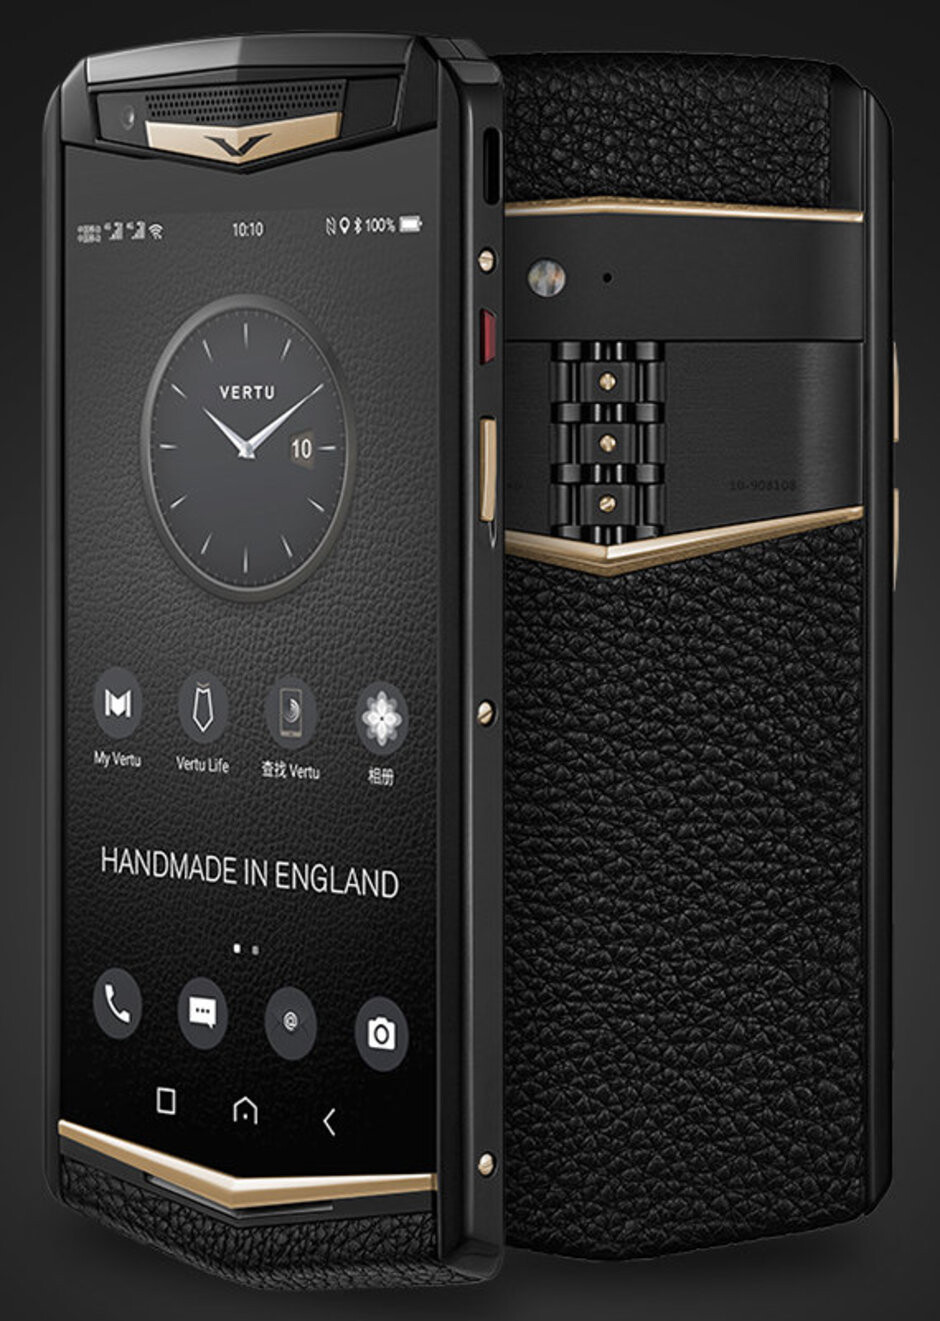 Vertu Aster P - Vertu rises from the dead with a $5,000 smartphone, the Aster P